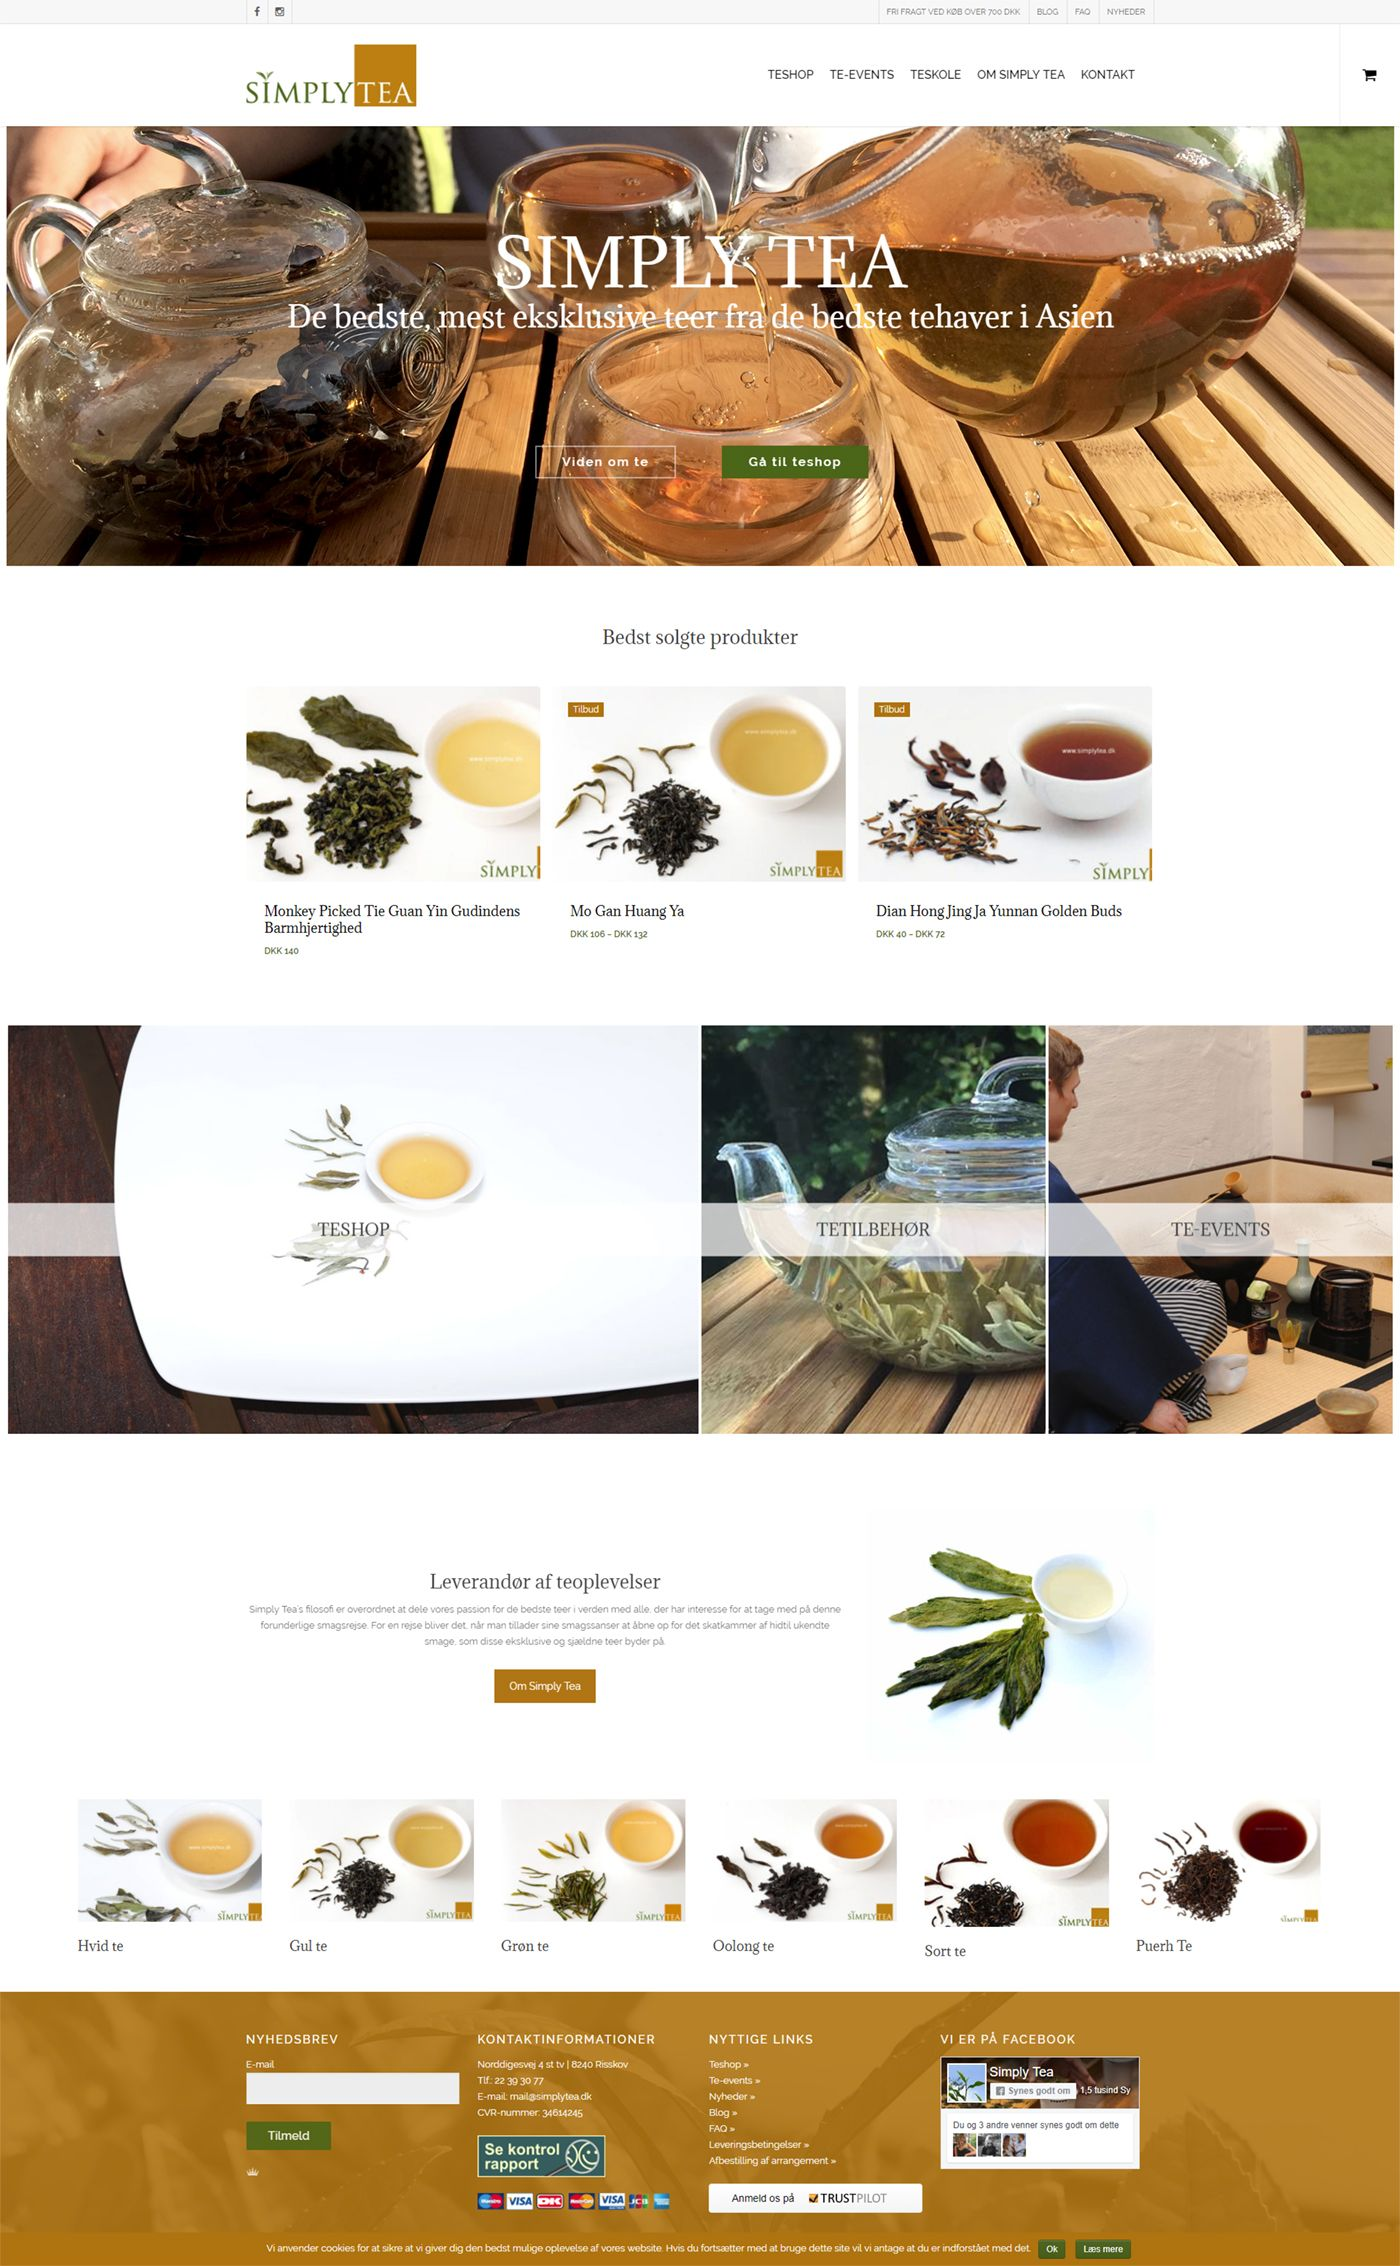 After-SimplyTea